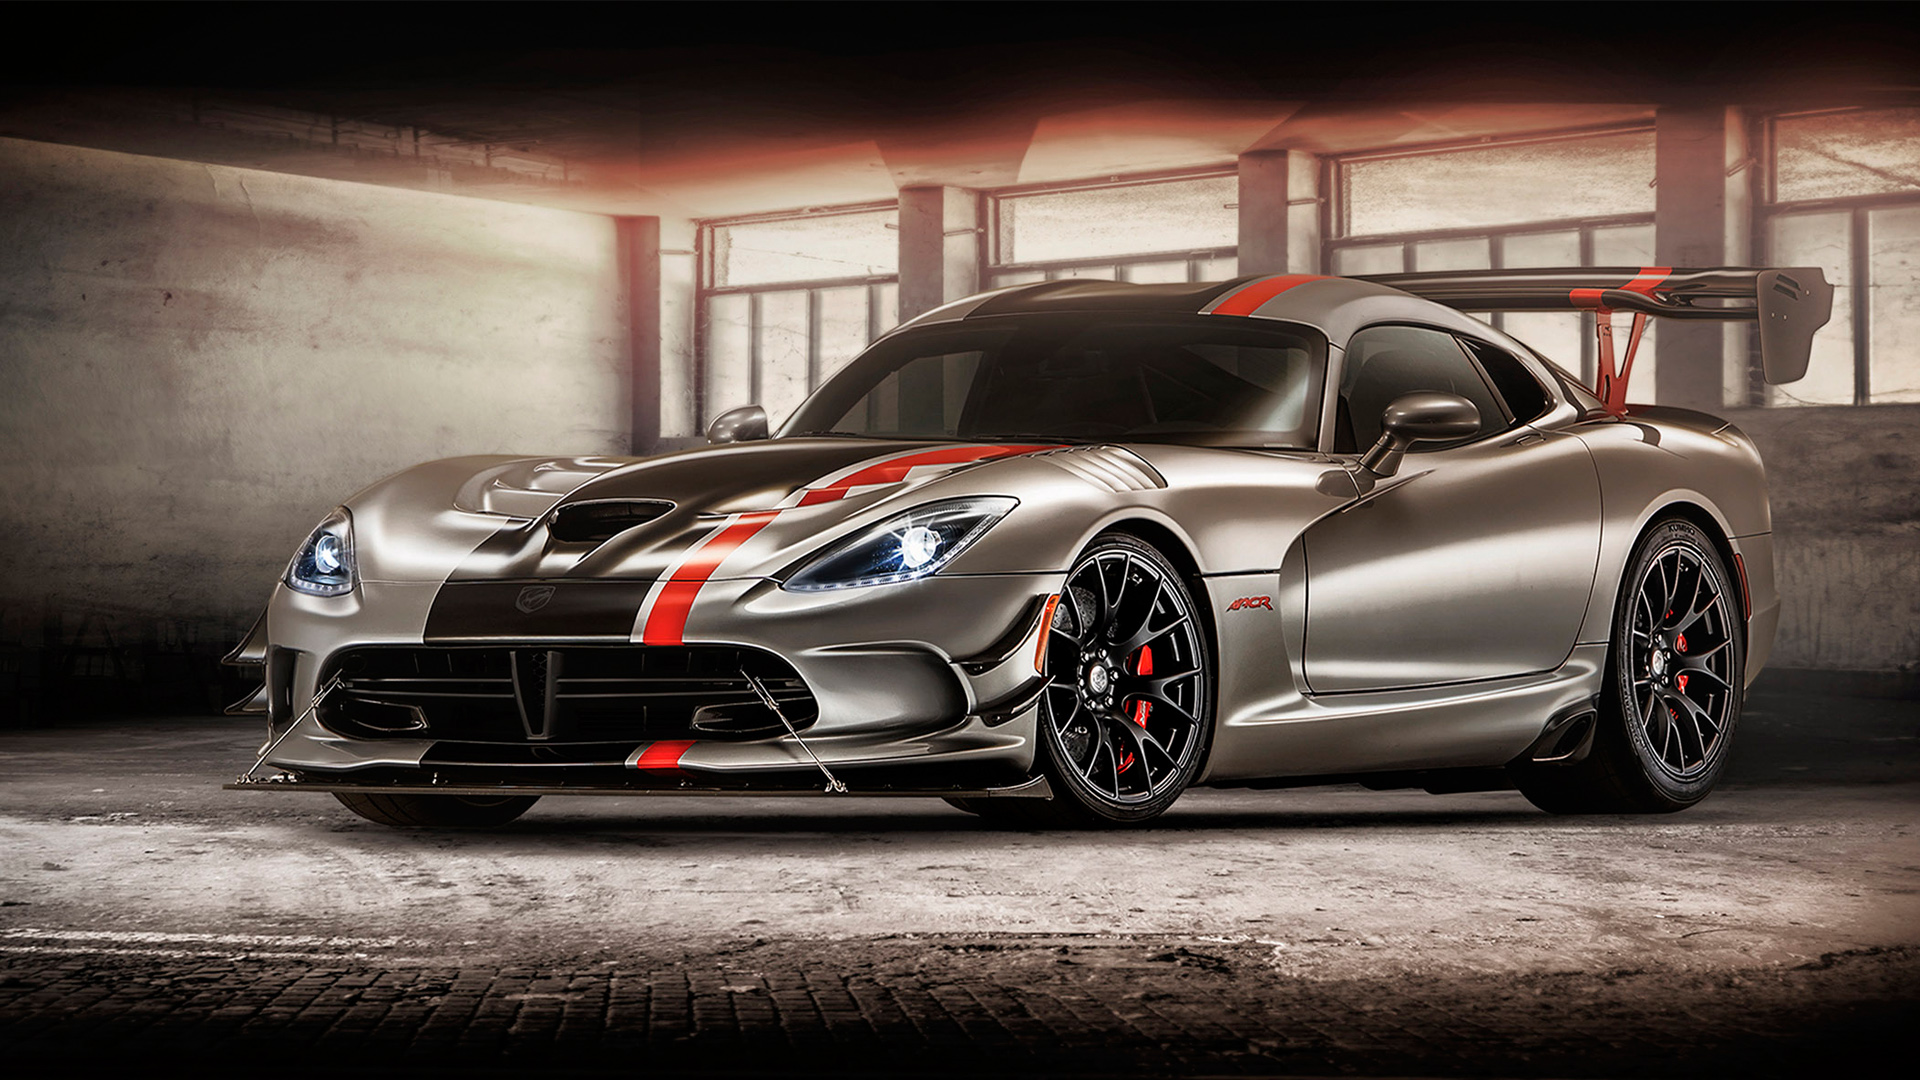 2016 Dodge Viper Wallpaper 1920x1080